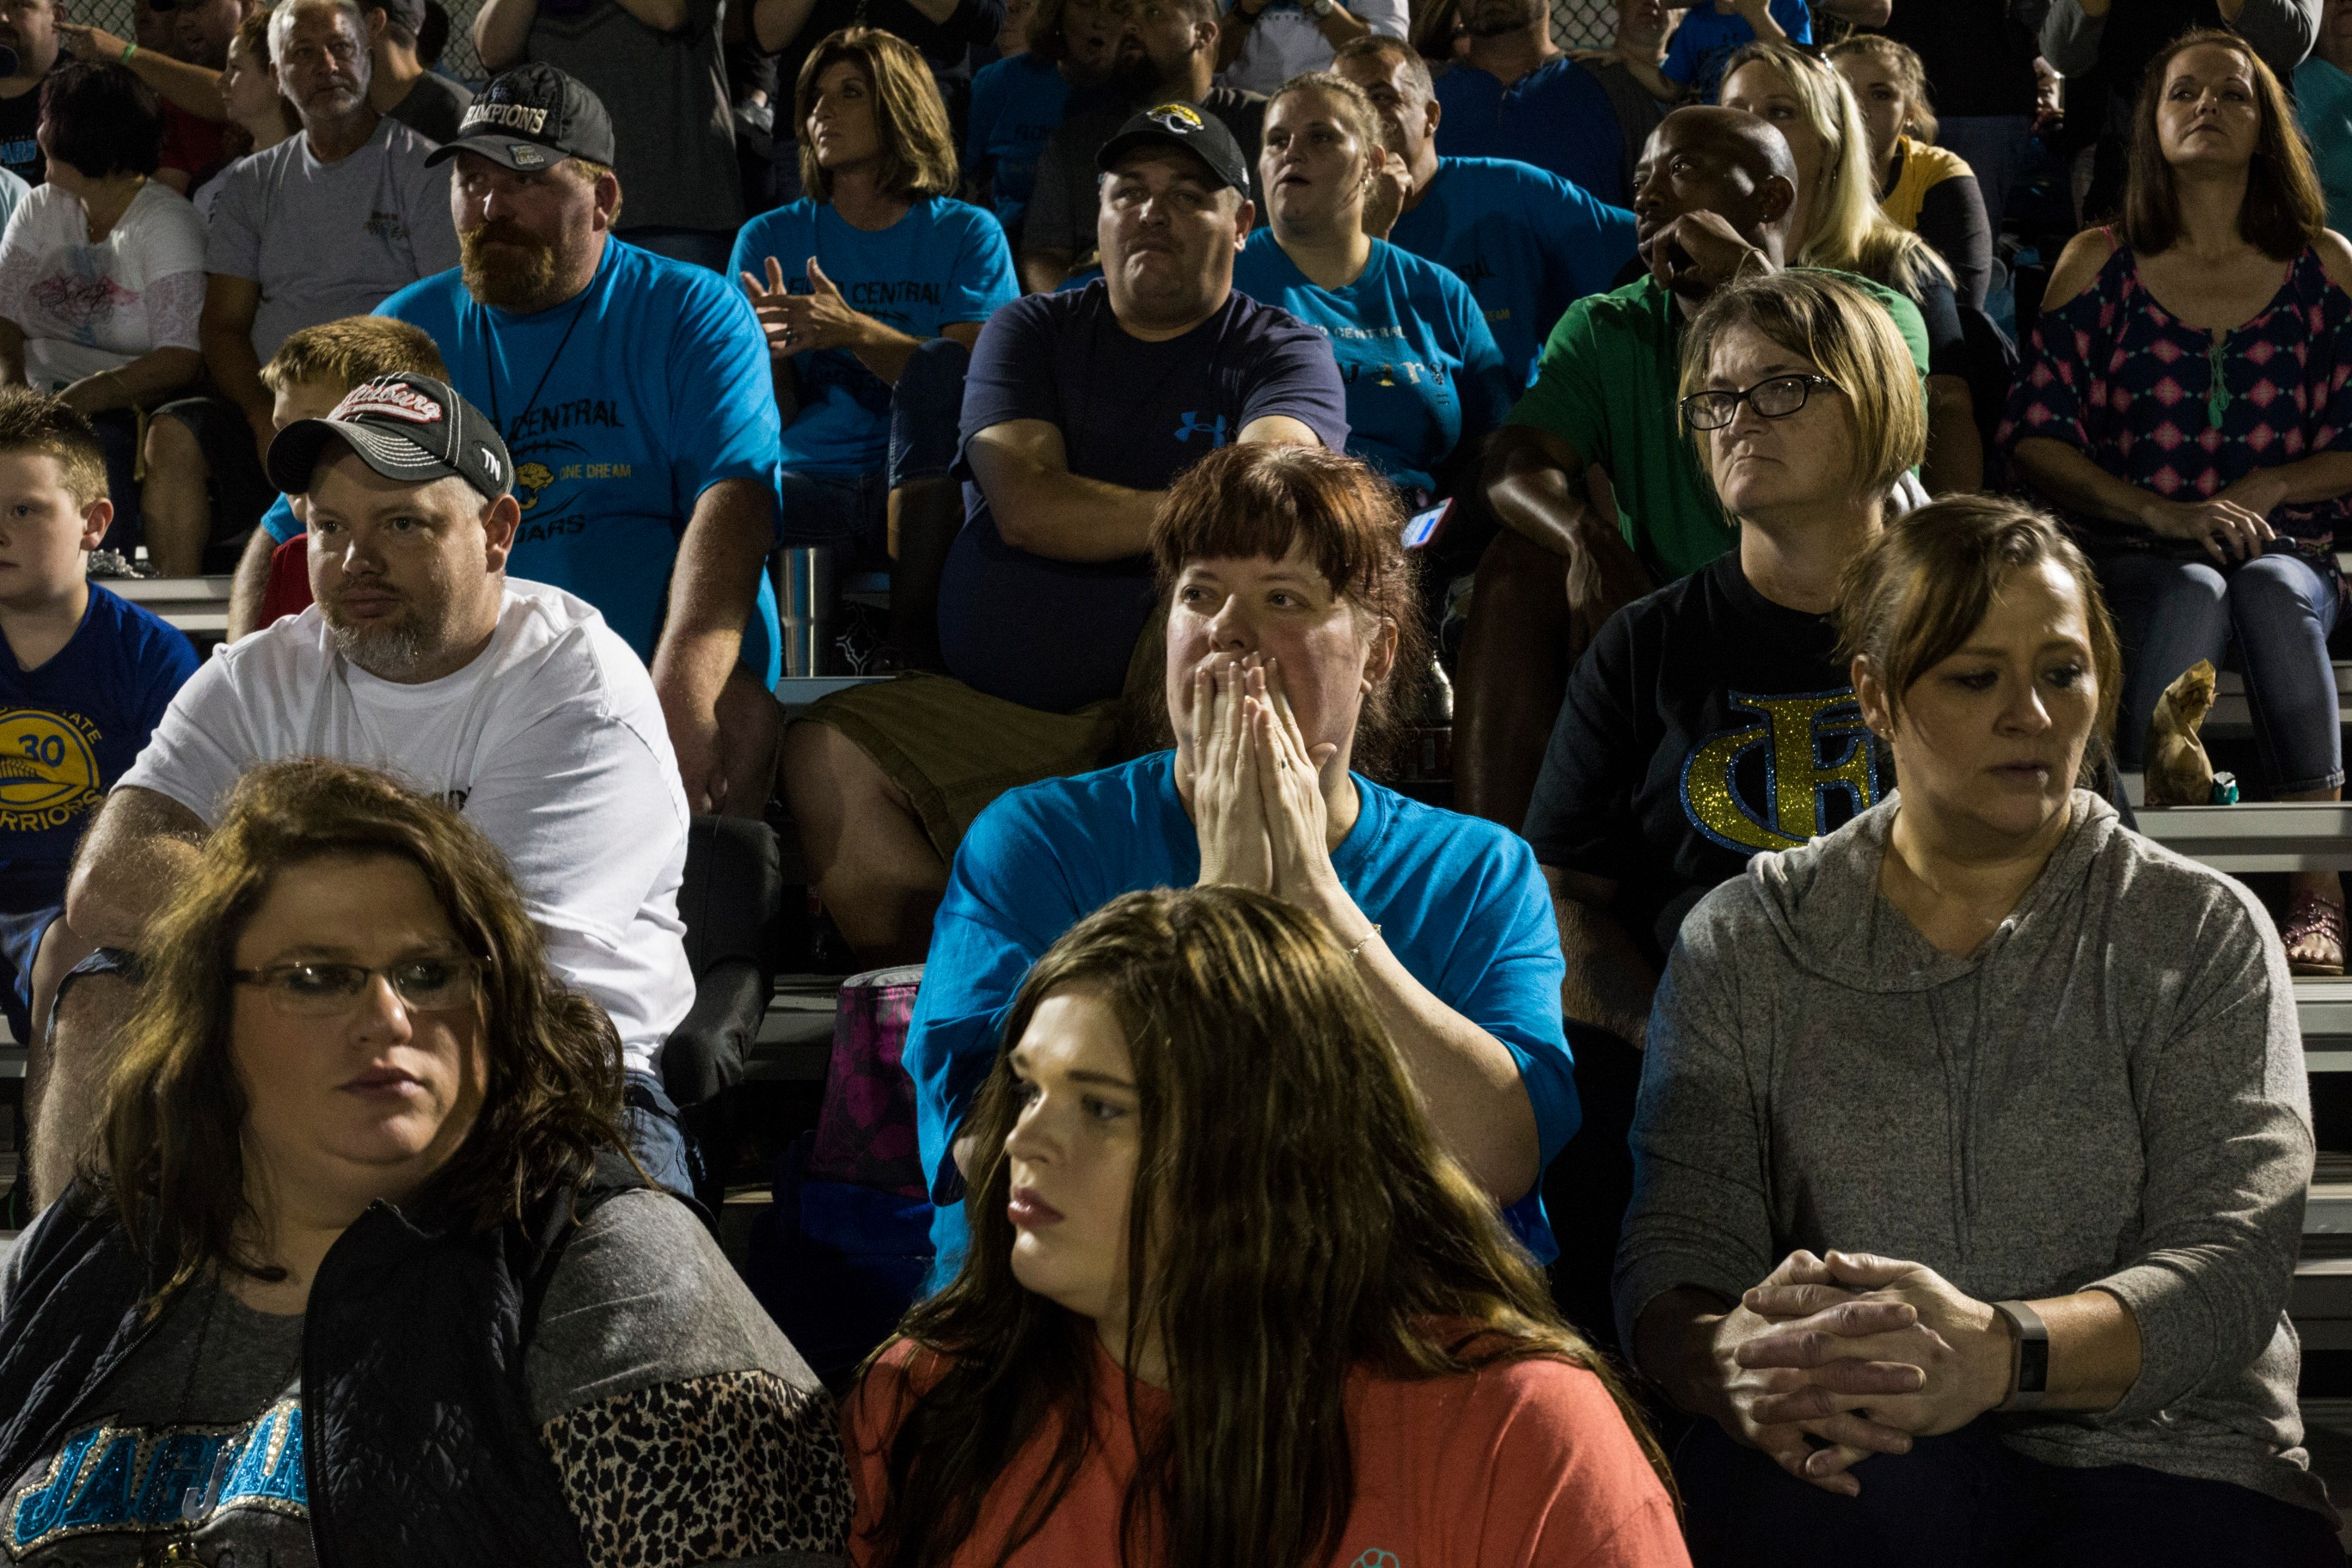 Angie Heard Minnie, center, watches intently as a play is made during a close football game at Floyd Central High School in Langley, Ky., on Friday, September 22, 2017. (Photo by Brittany Greeson/GroundTruth)